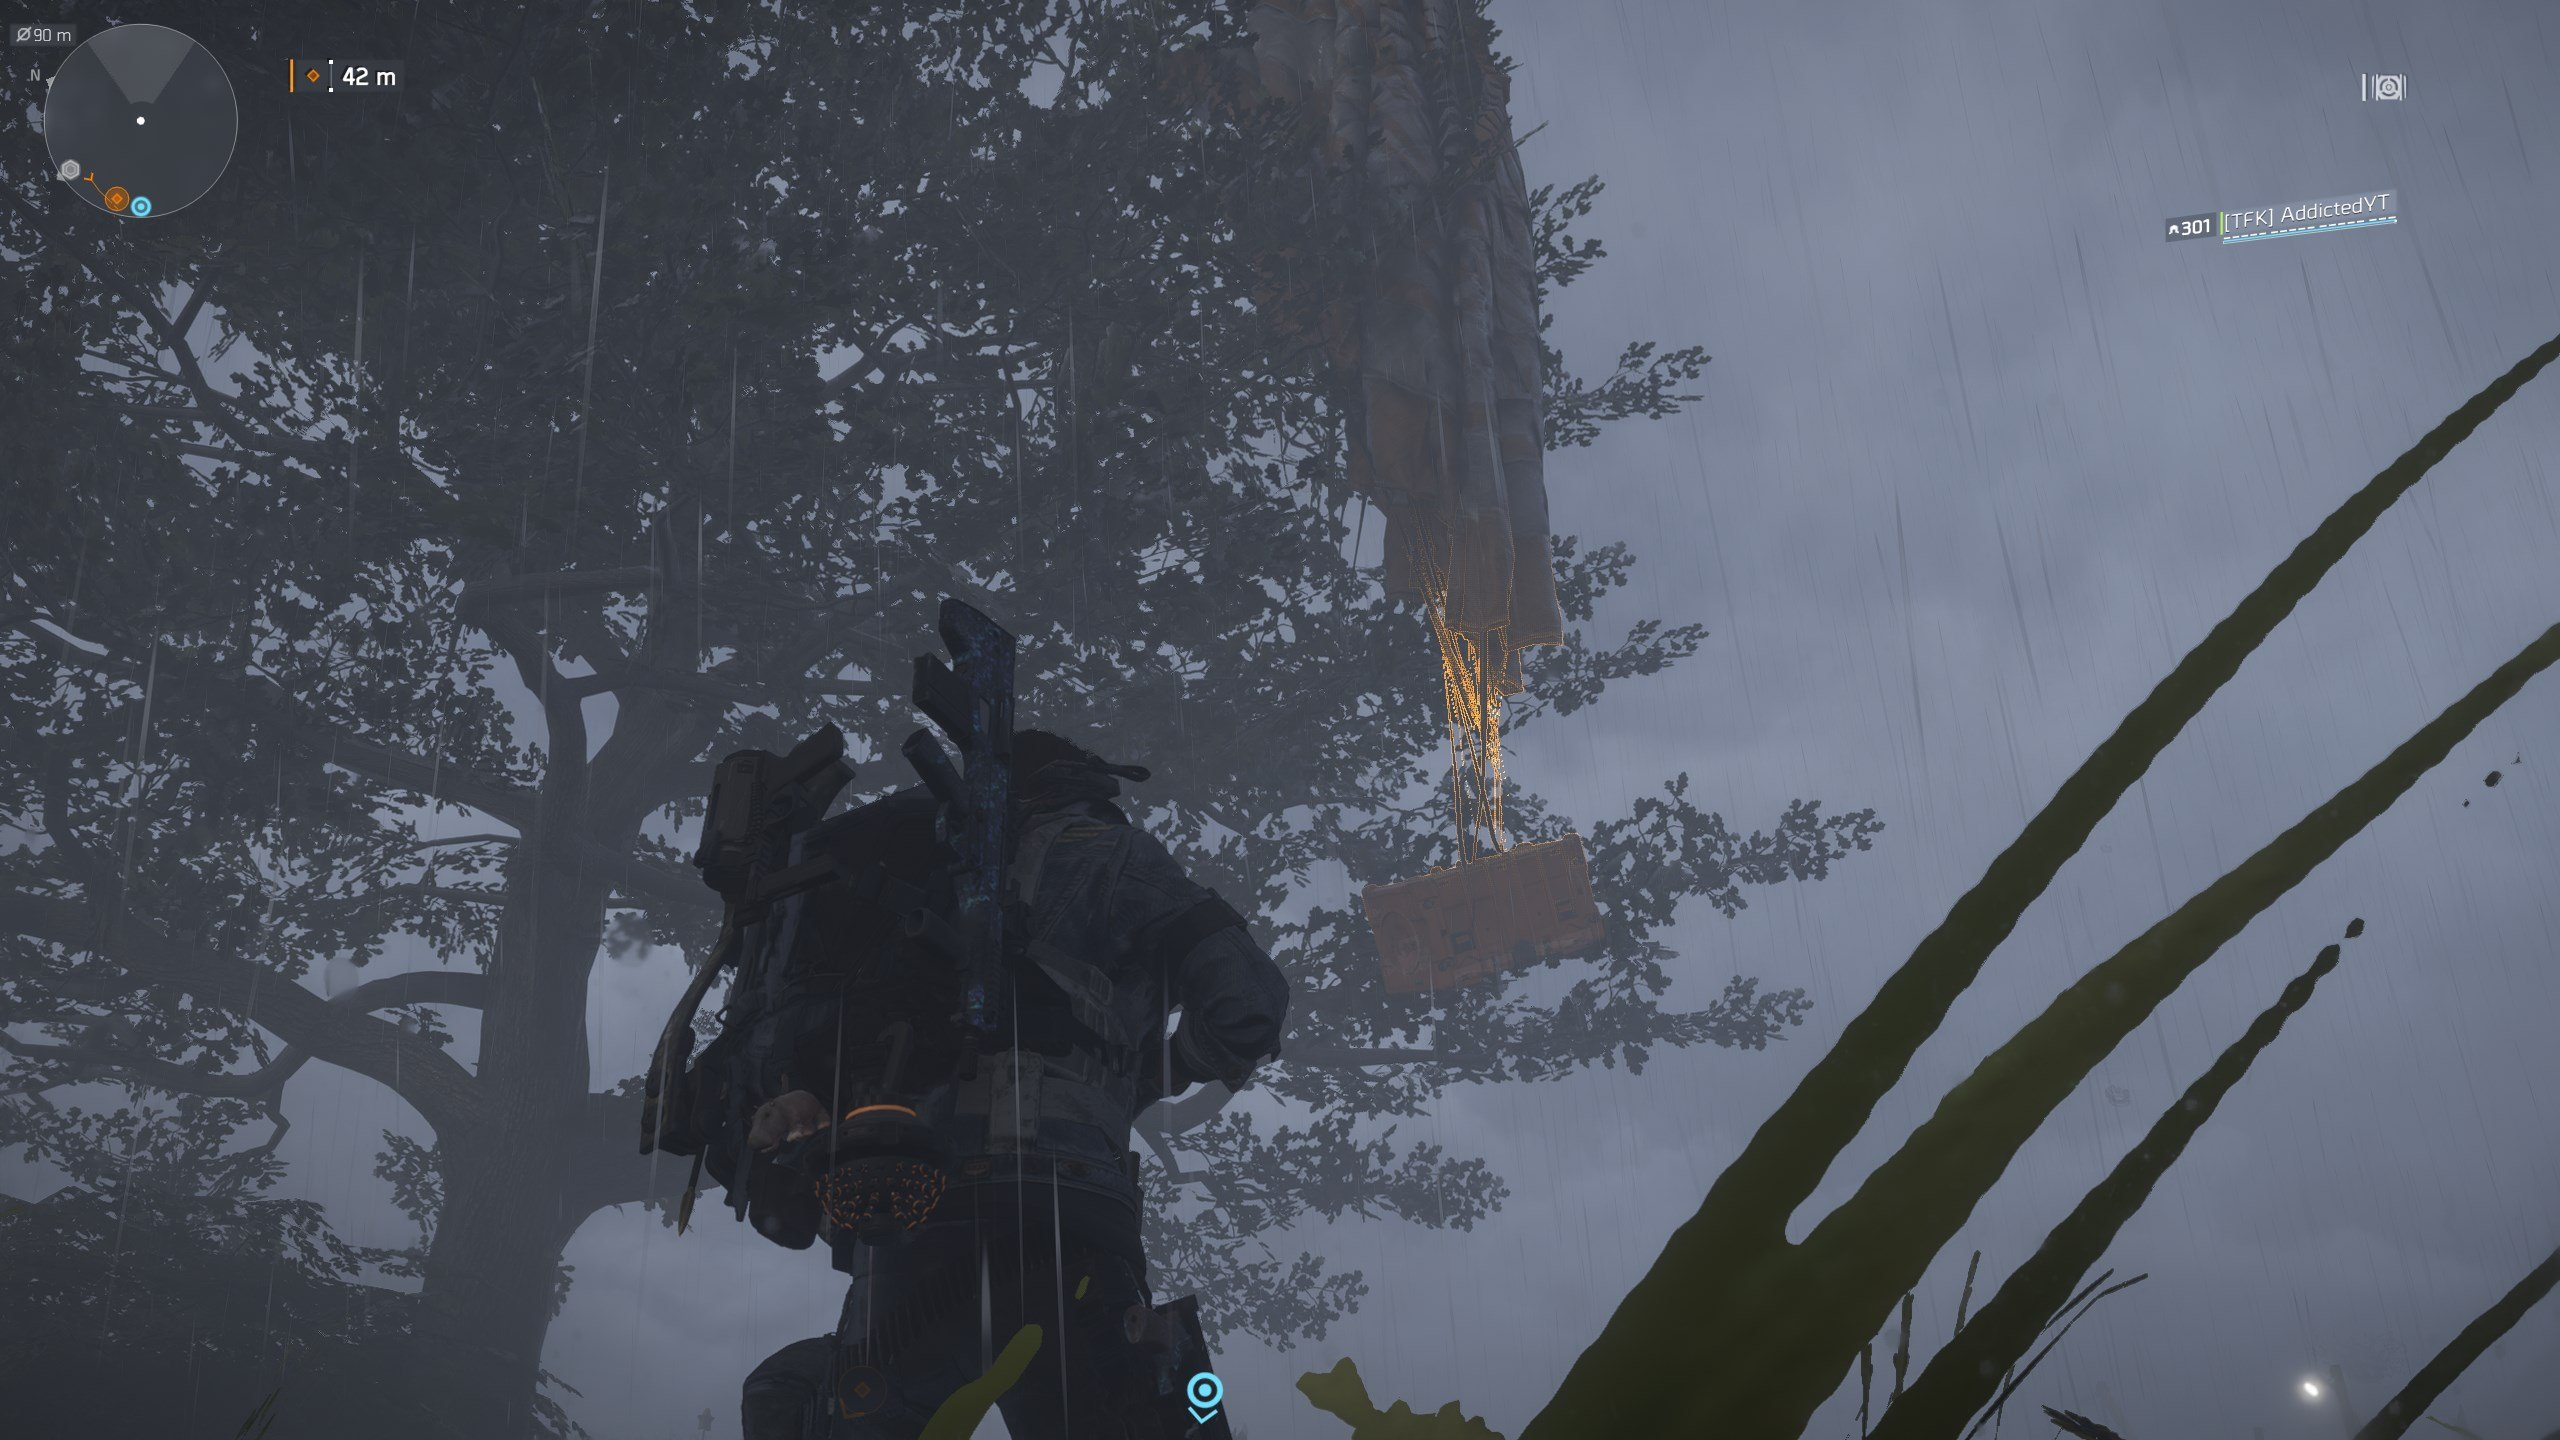 how to find dye locations - dye container hanging from a tree